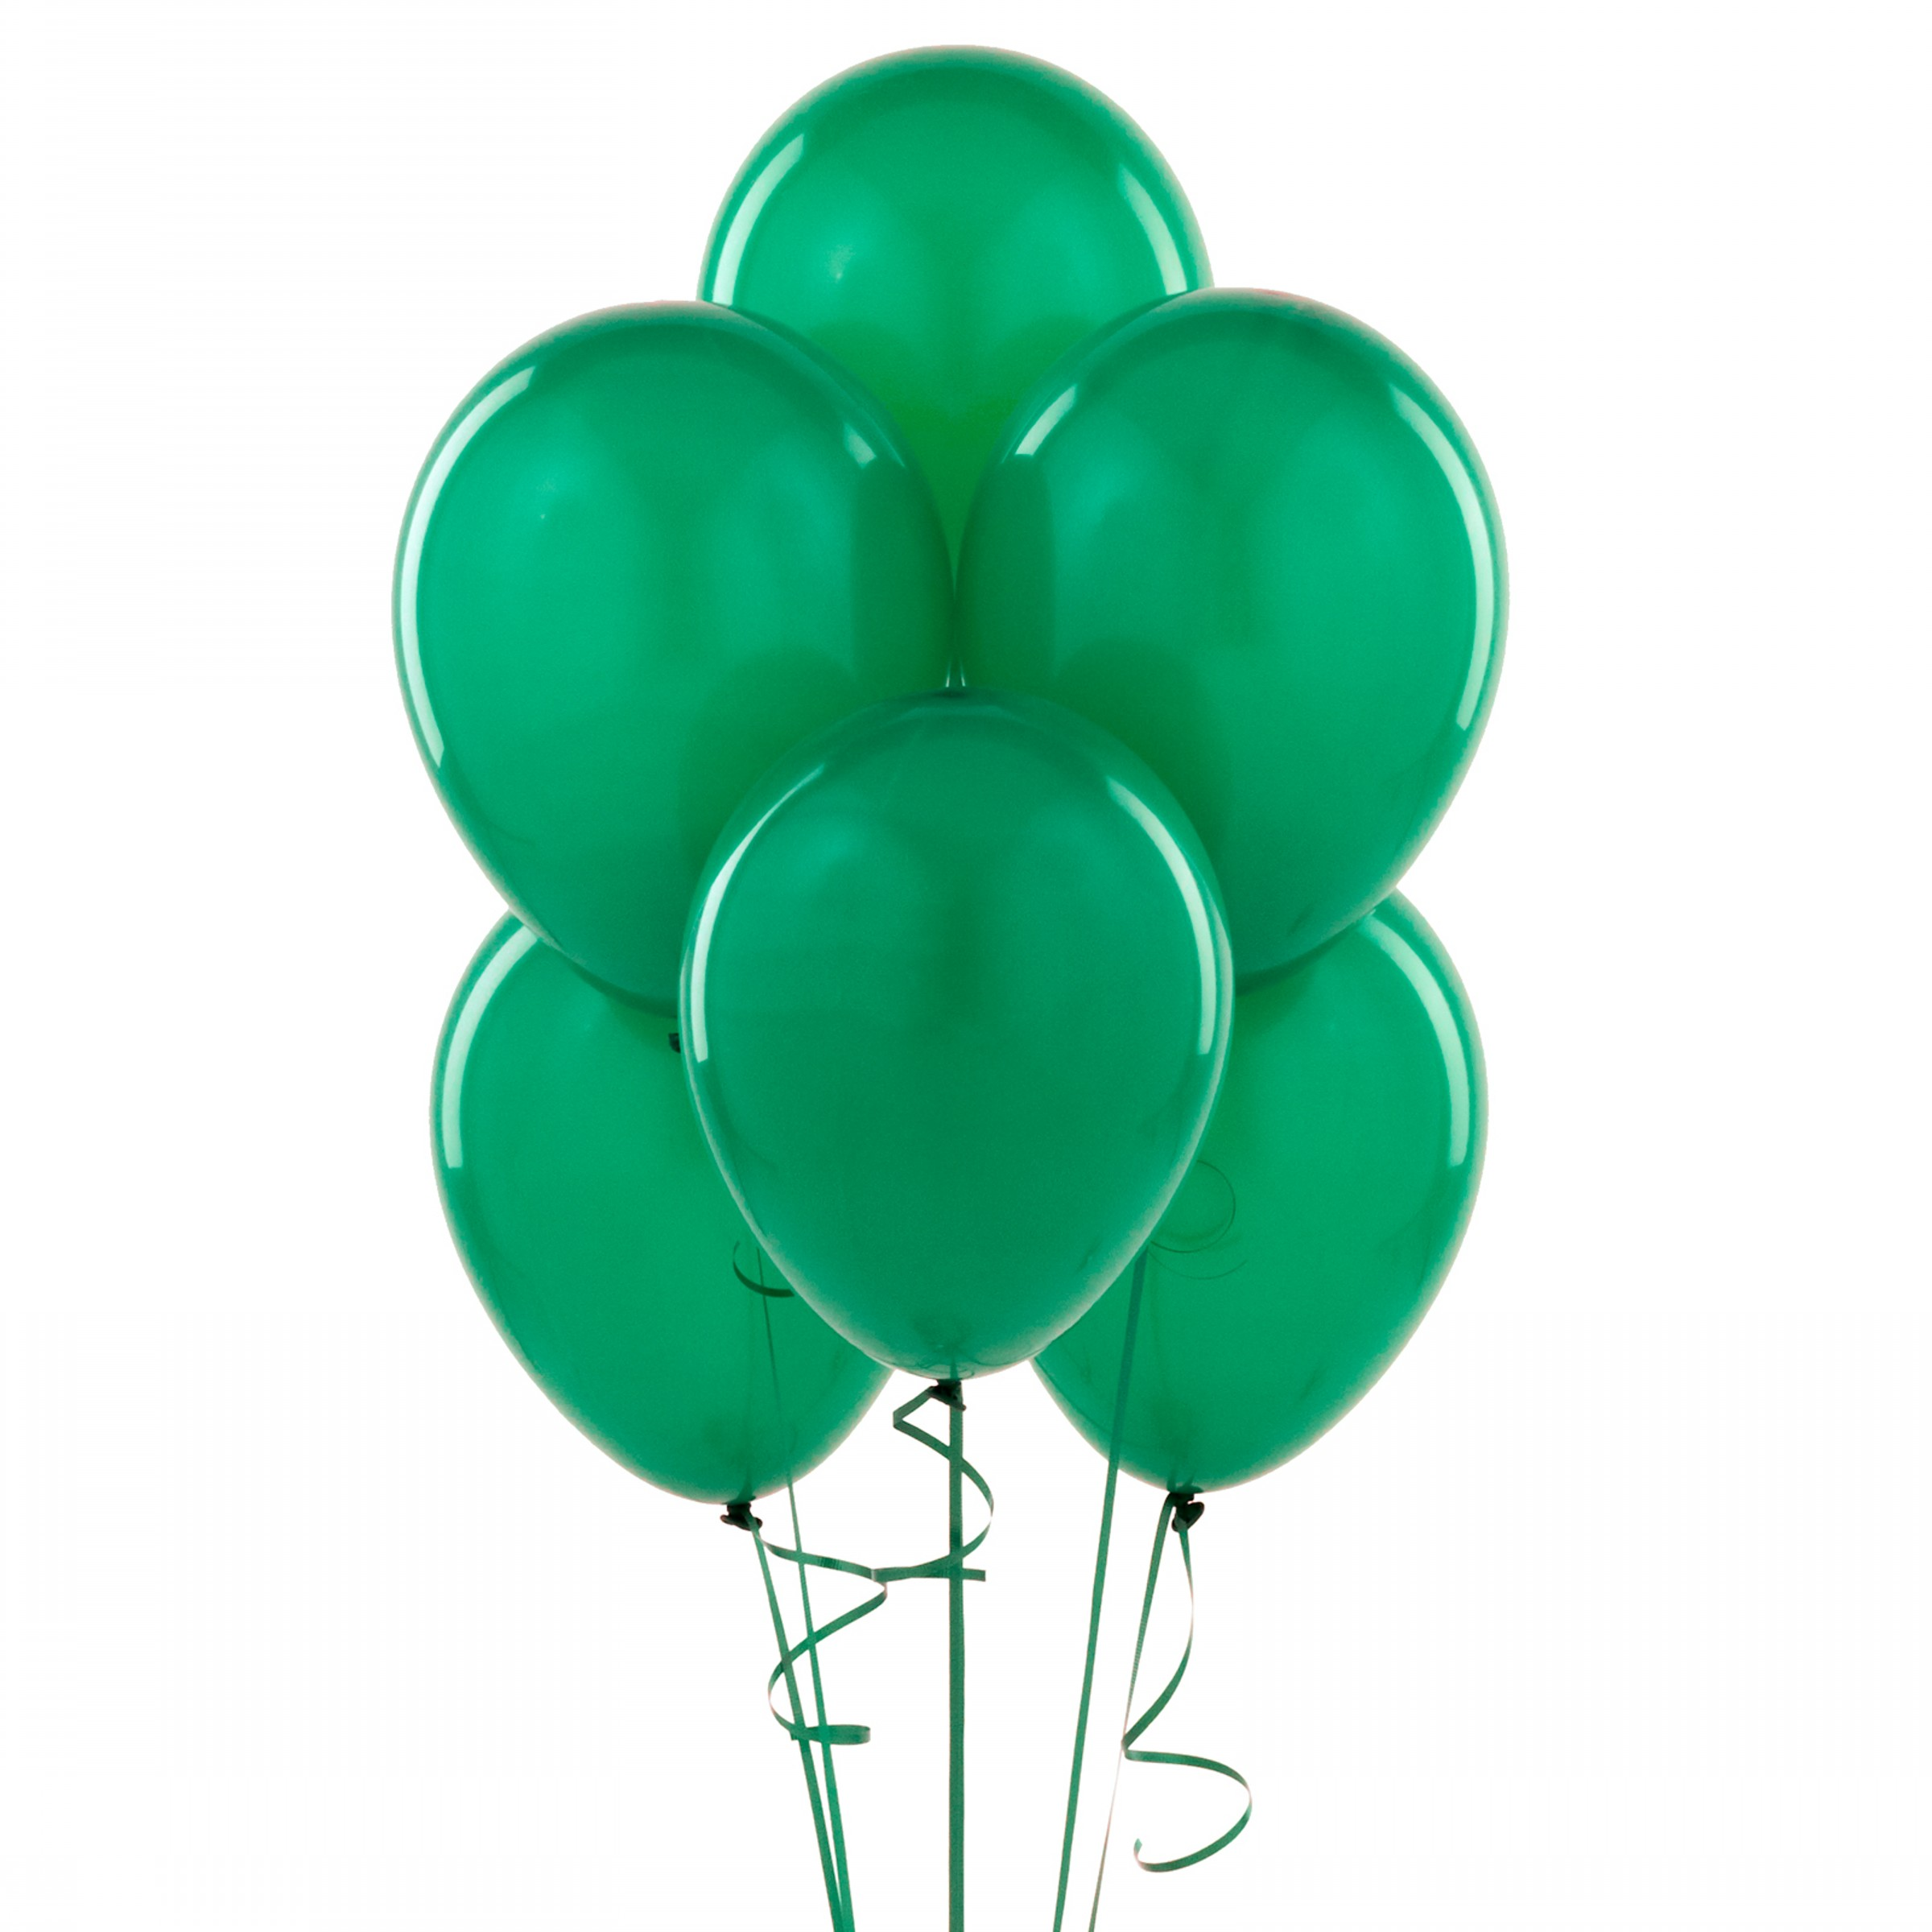 """72 Latex Balloons 12"""" with Clips and Curling Ribbon - Green"""